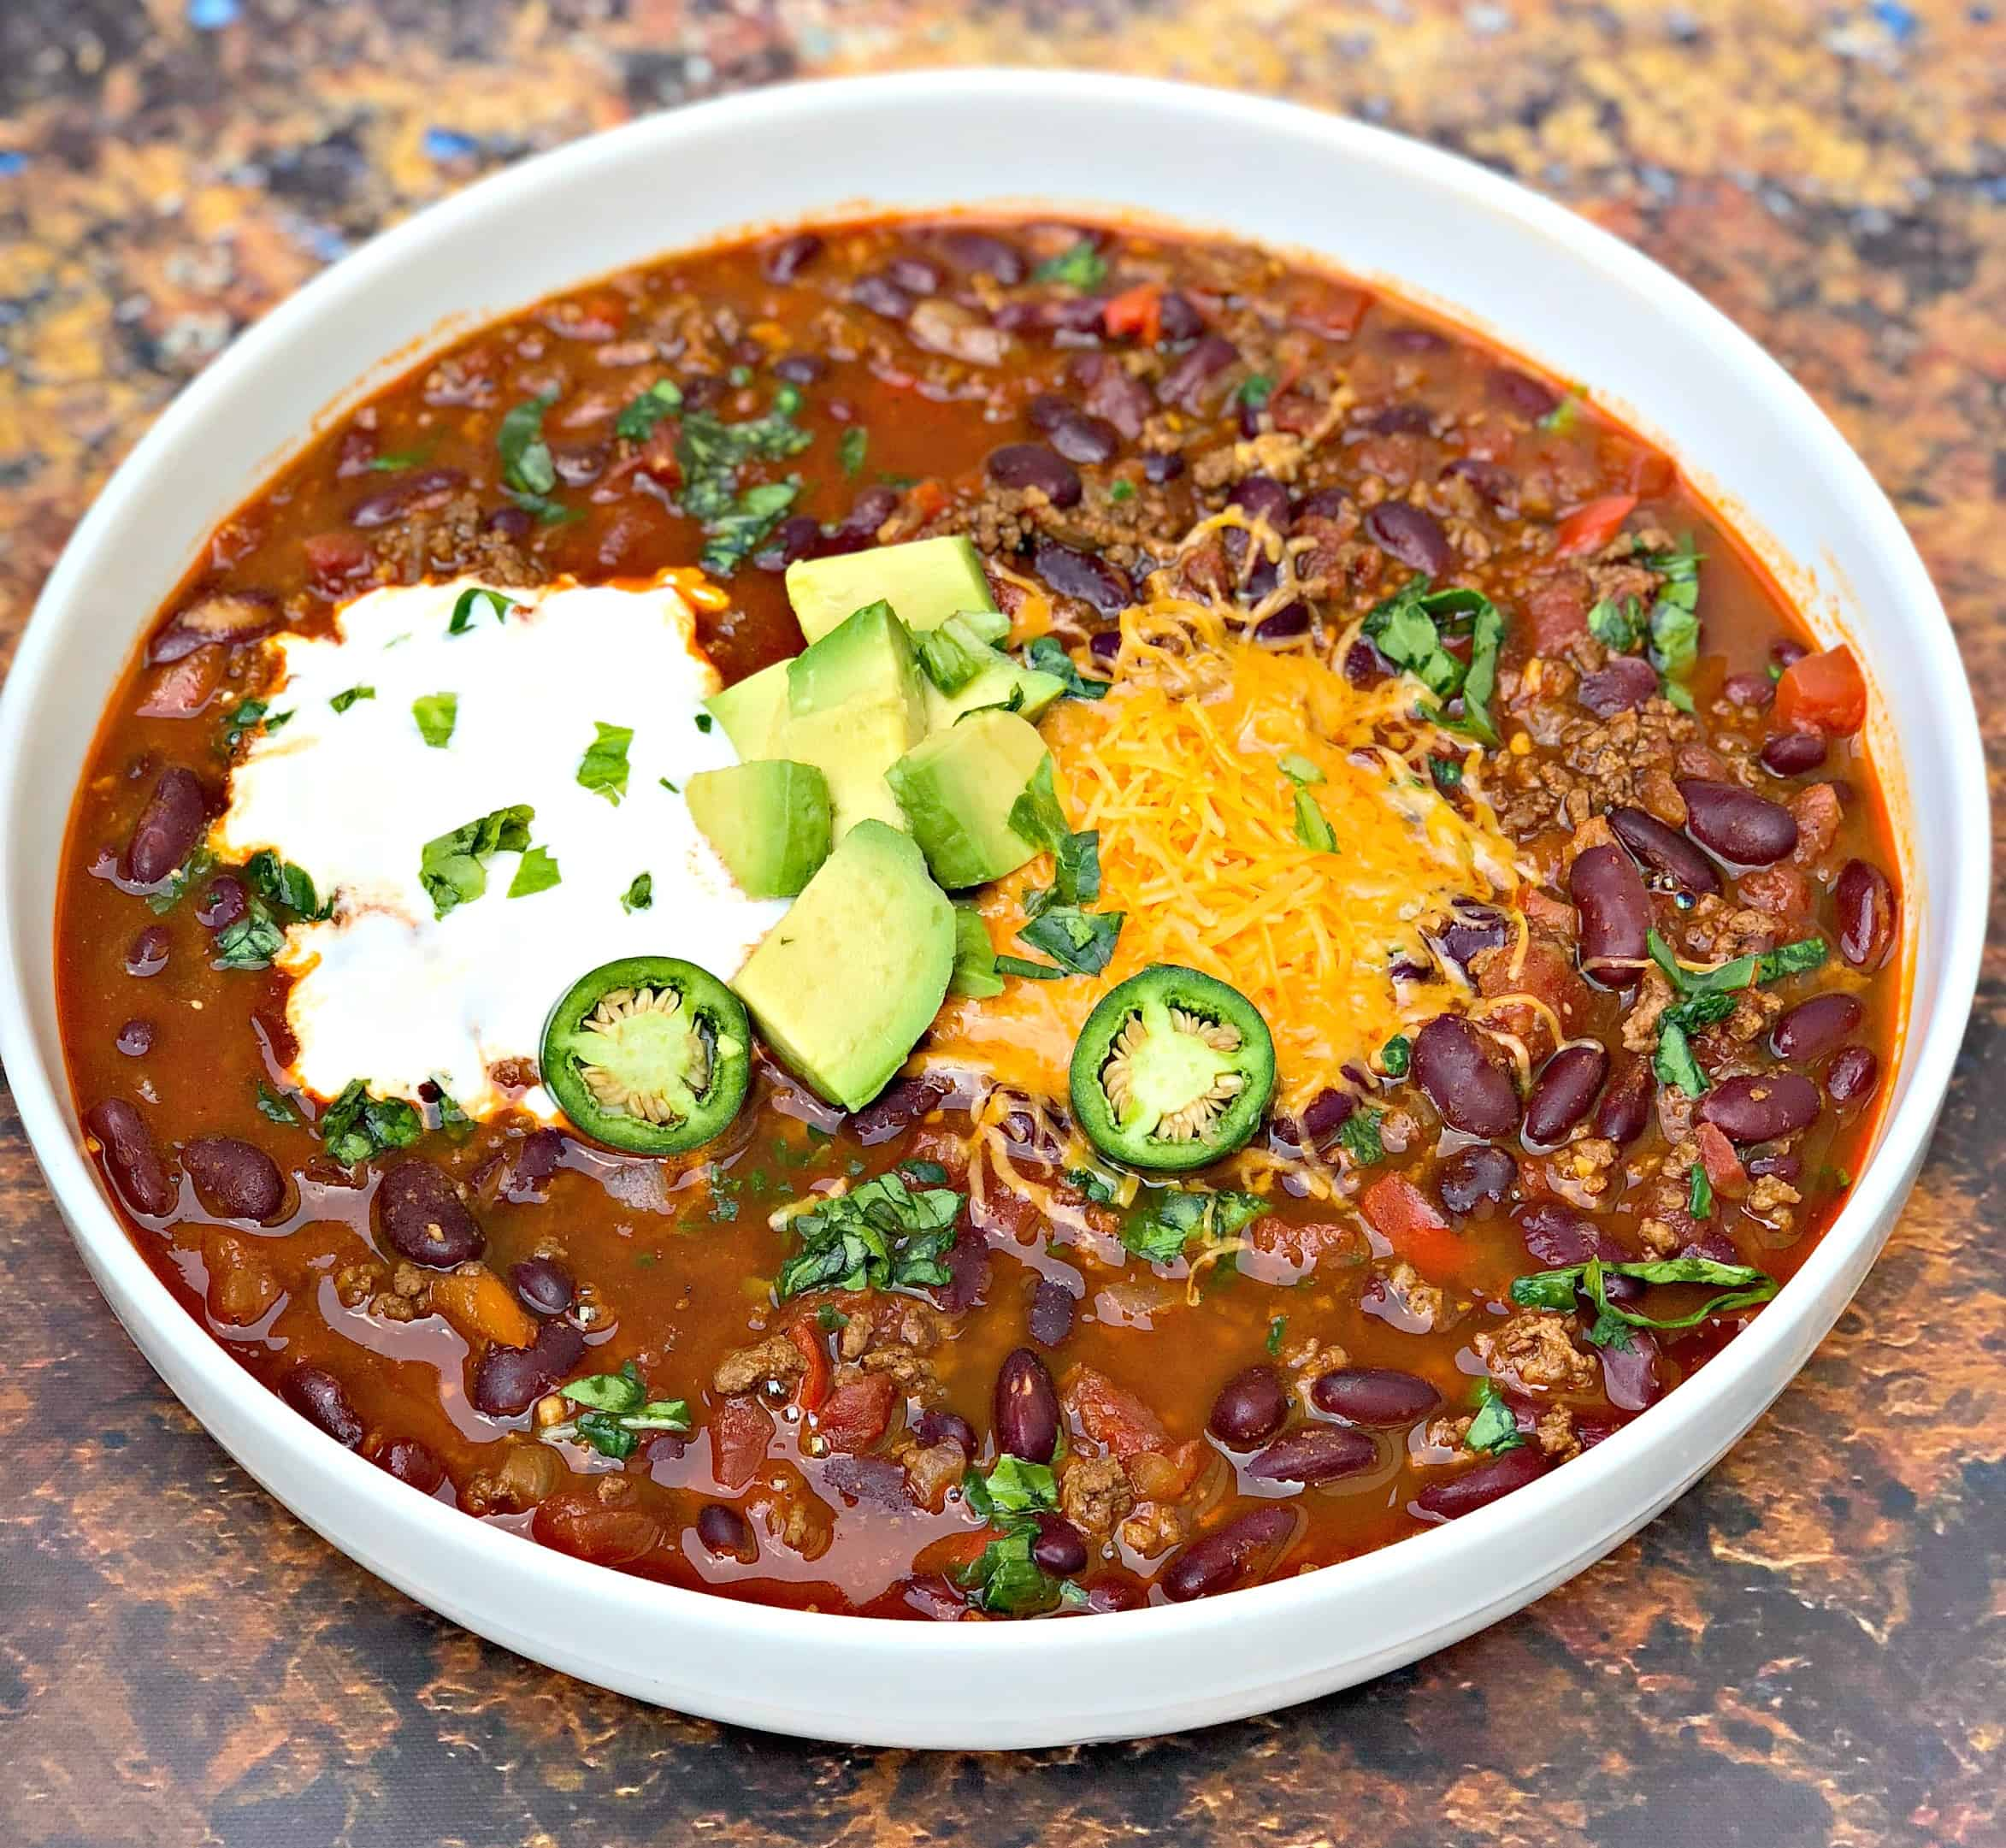 instant pot chili with shredded cheese, avocado, sour cream and jalapeno served in a white bowl